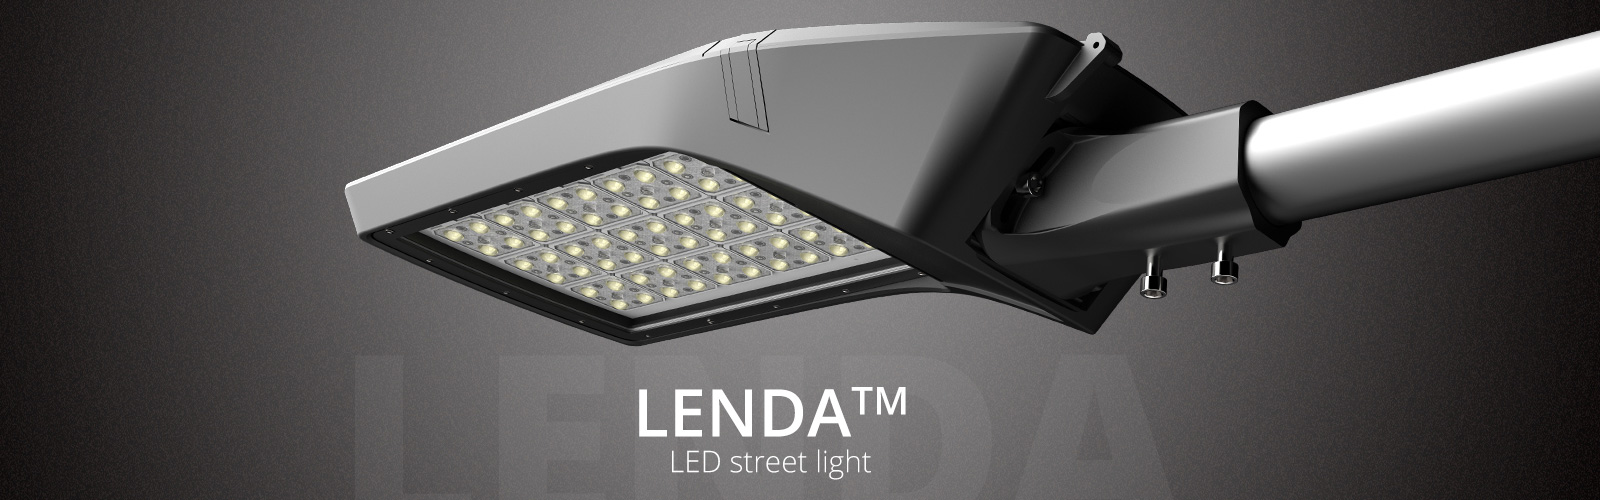 News-led street light, led high bay light, led street light manufacturer.